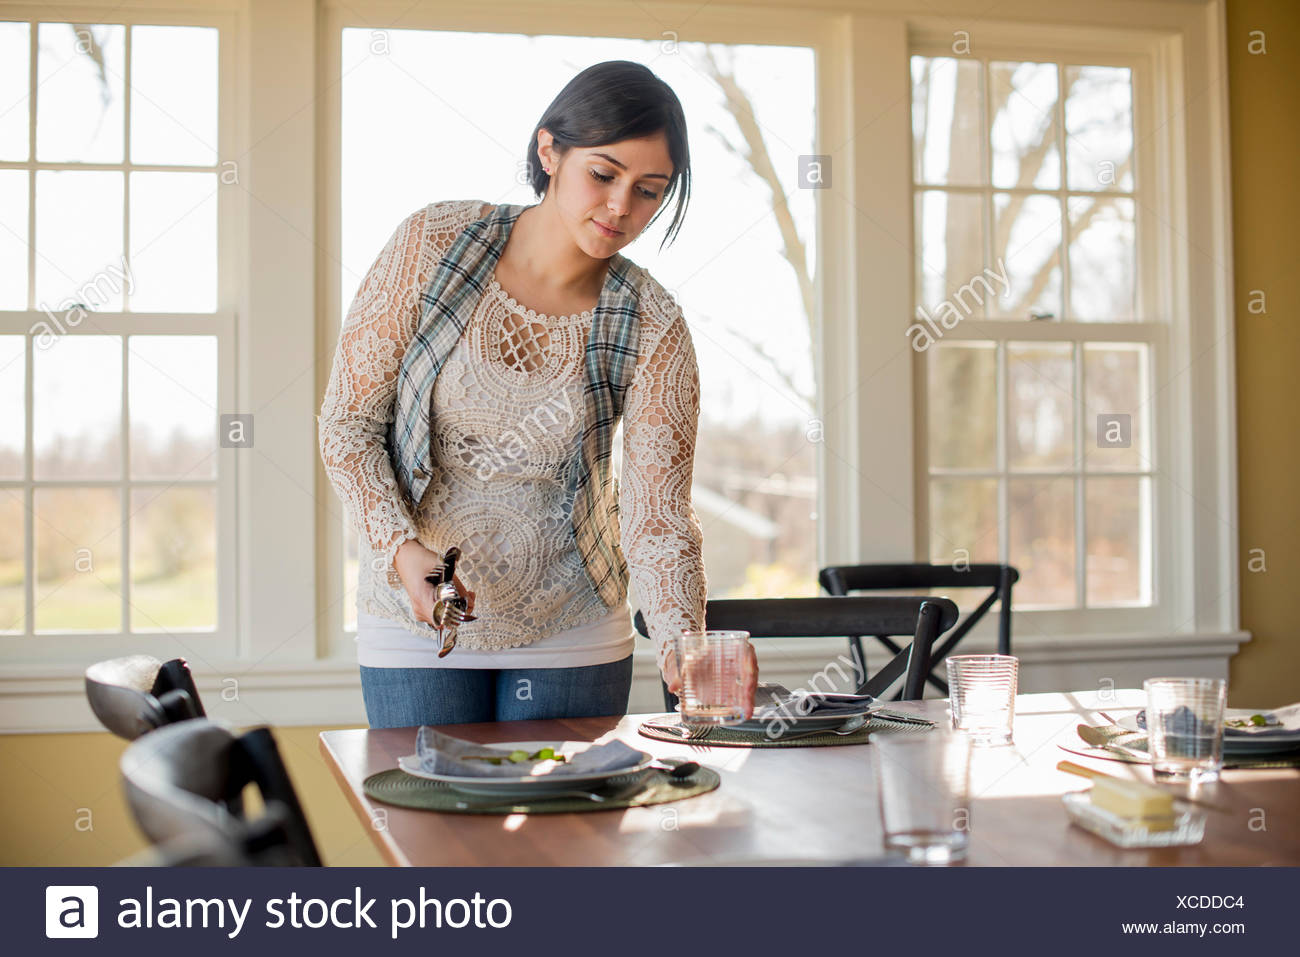 A woman setting the table for a meal. - Stock Image